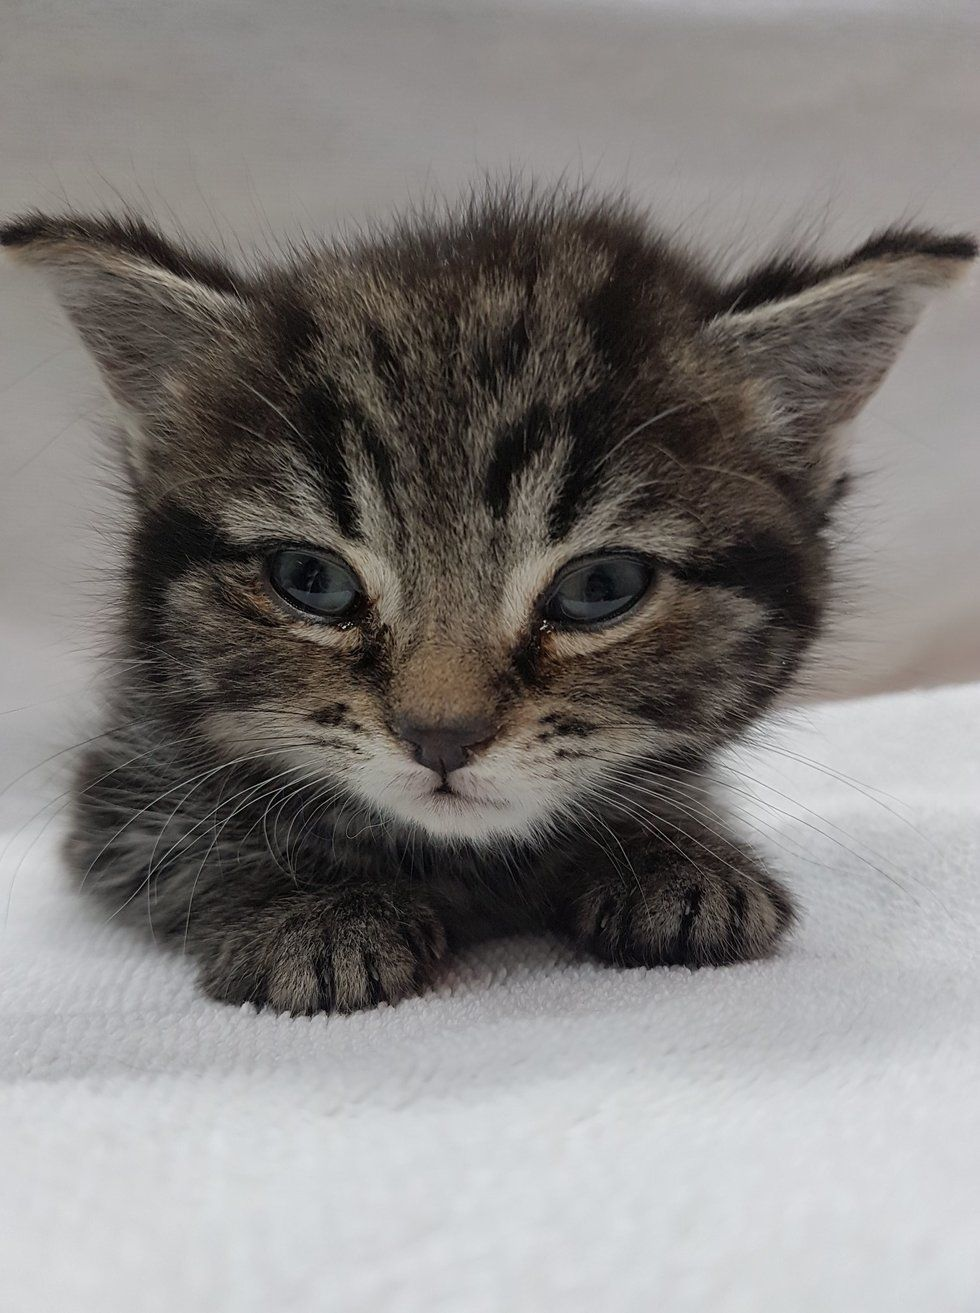 A Tiny Kitten Was Found Abandoned In A Park She Was Brought To A Veterinary Clinic Where They Discovered She Needed A Kittens 6 Week Old Kitten Tiny Kitten